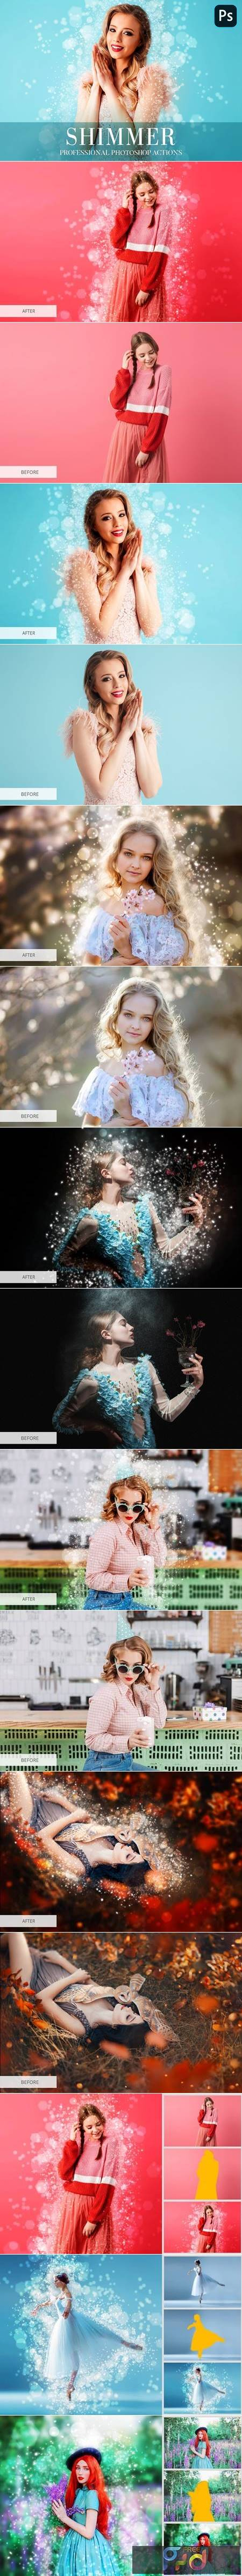 Shimmer Photoshop Action 4870504 1